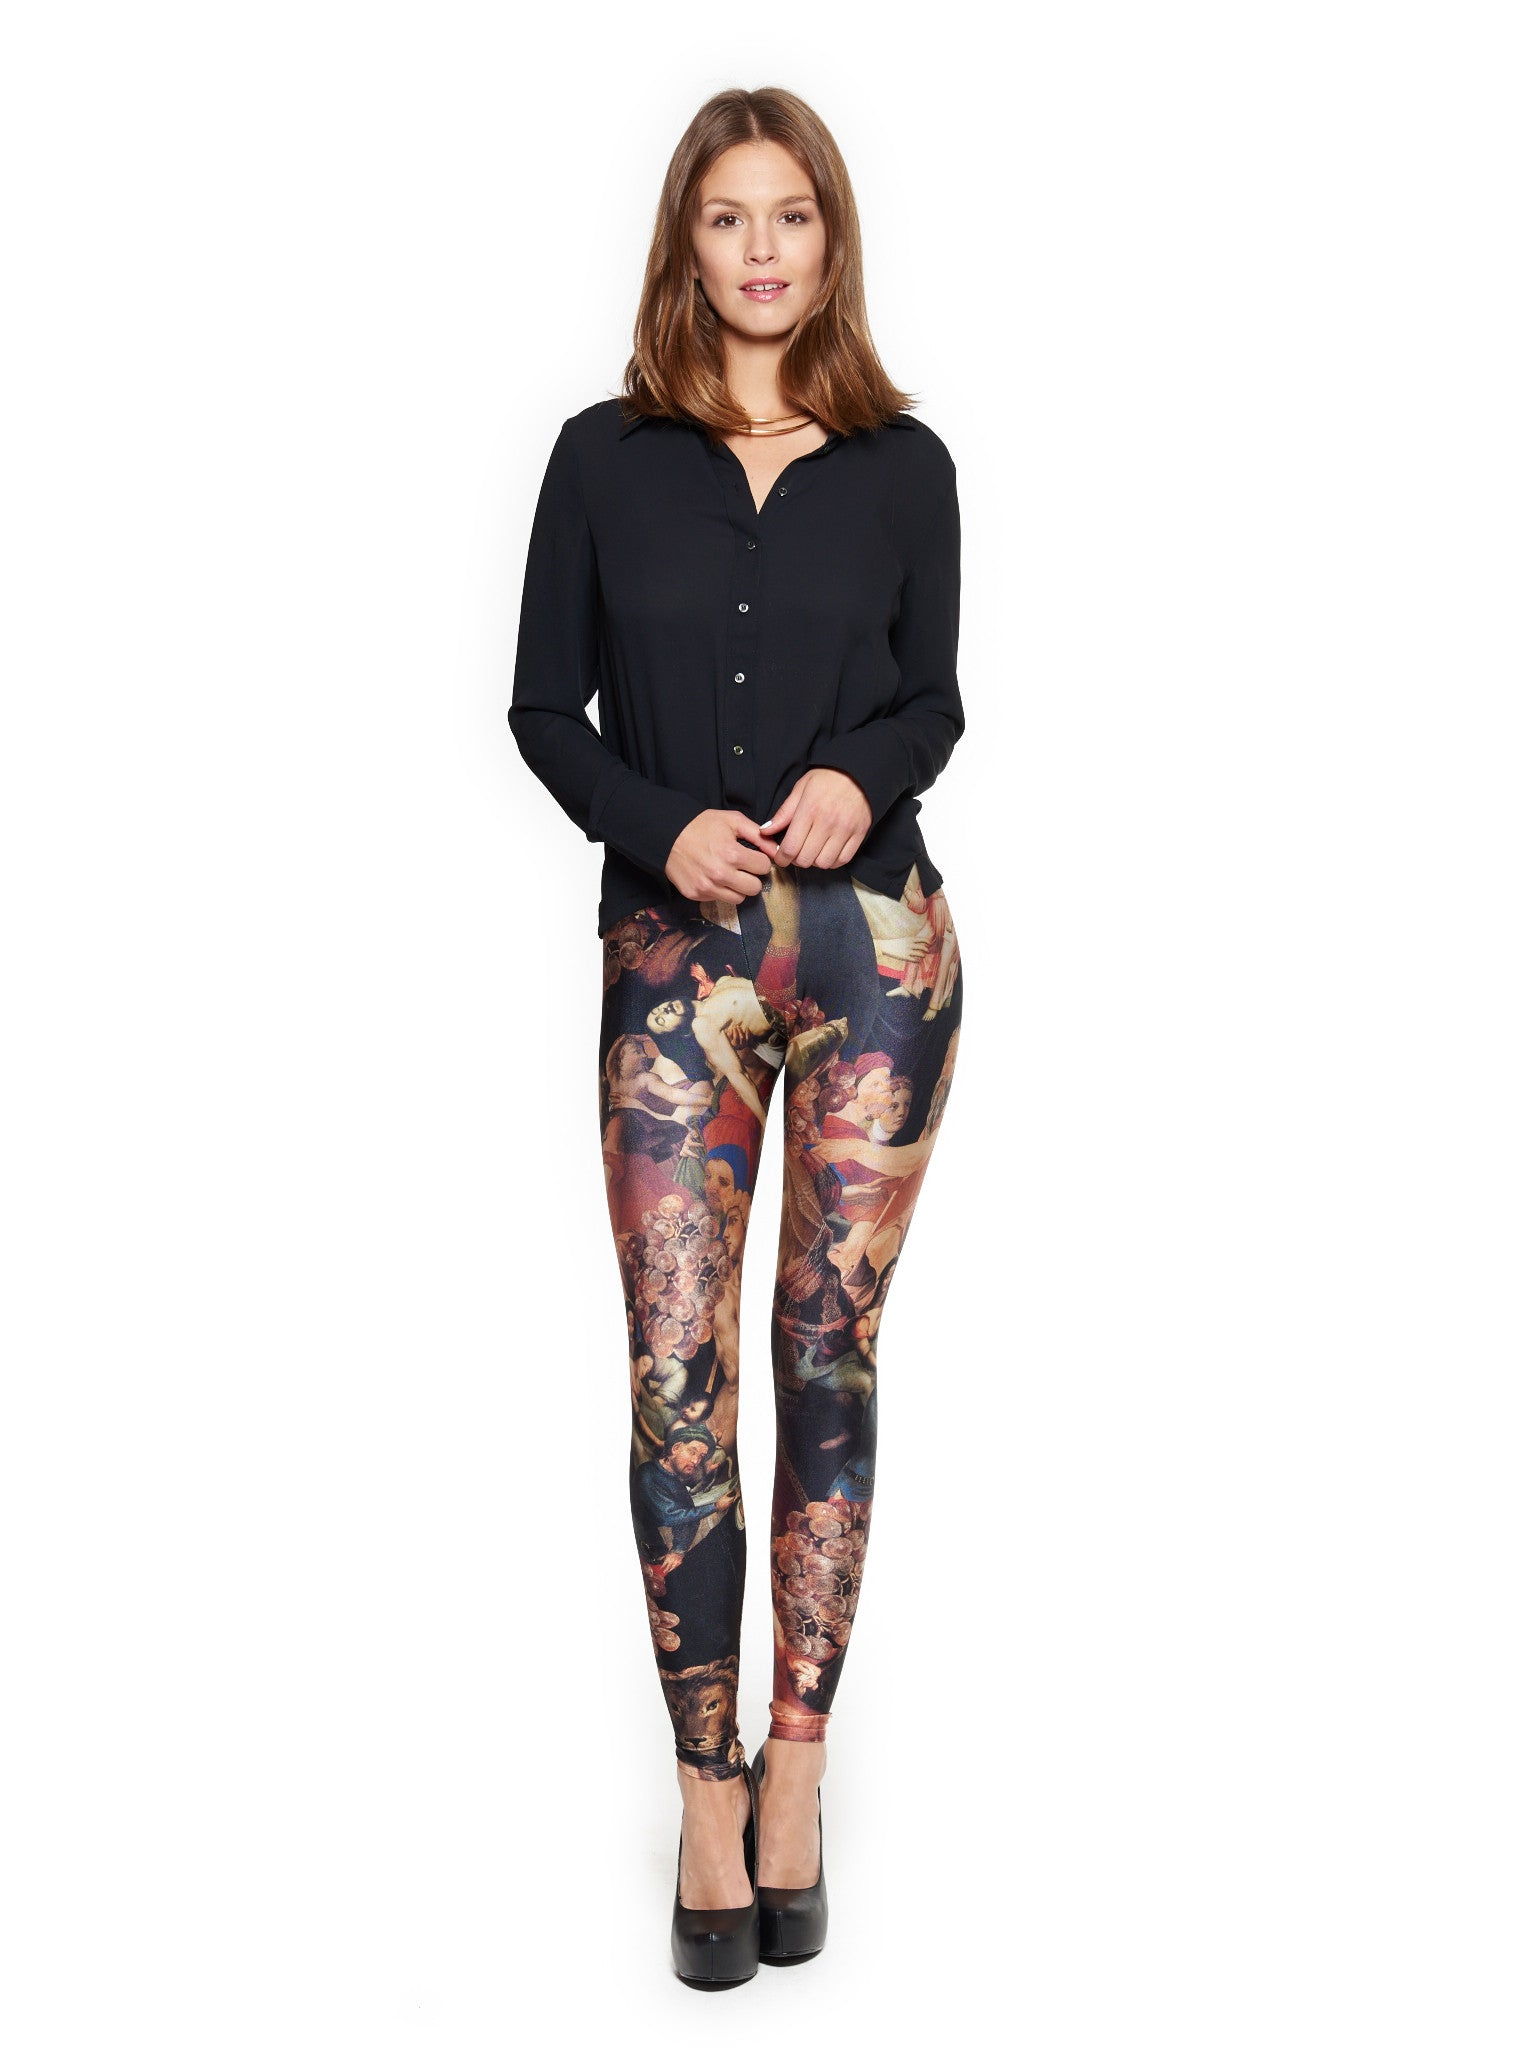 Vatican Queen West Leggings - Nuvango Gallery & Goods - 1